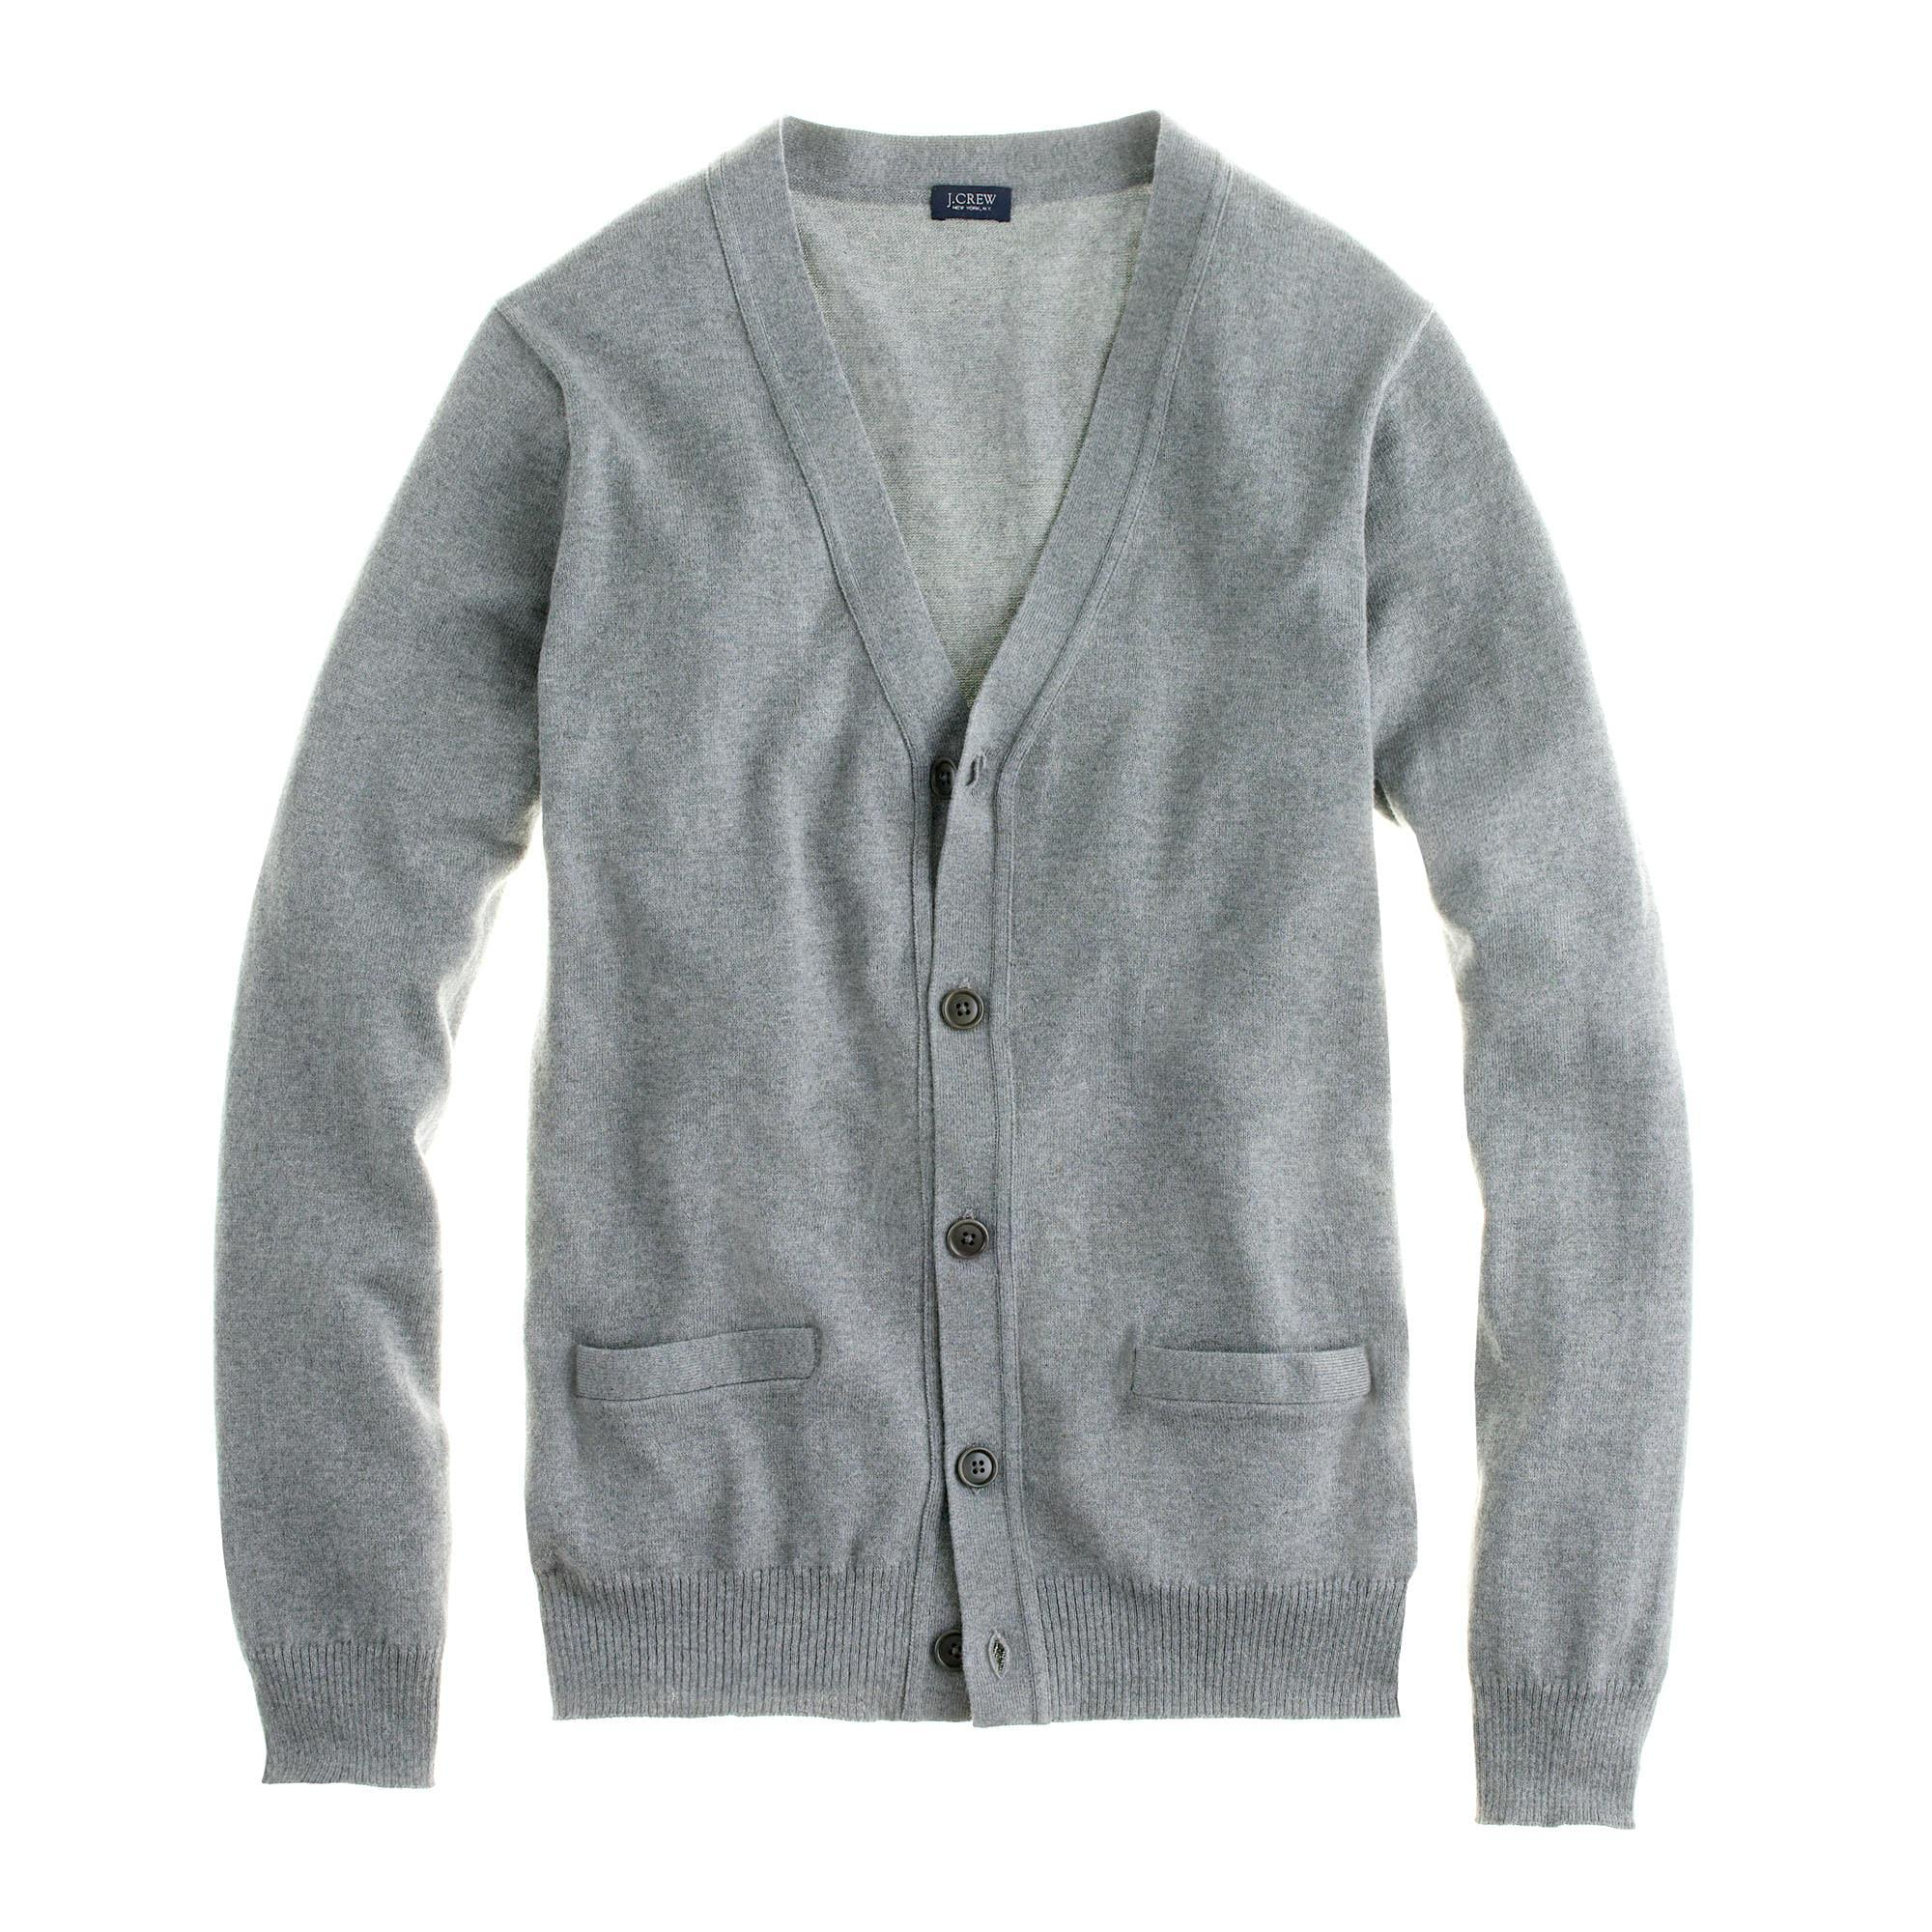 J.crew Cotton-cashmere Cardigan Sweater in Gray for Men | Lyst